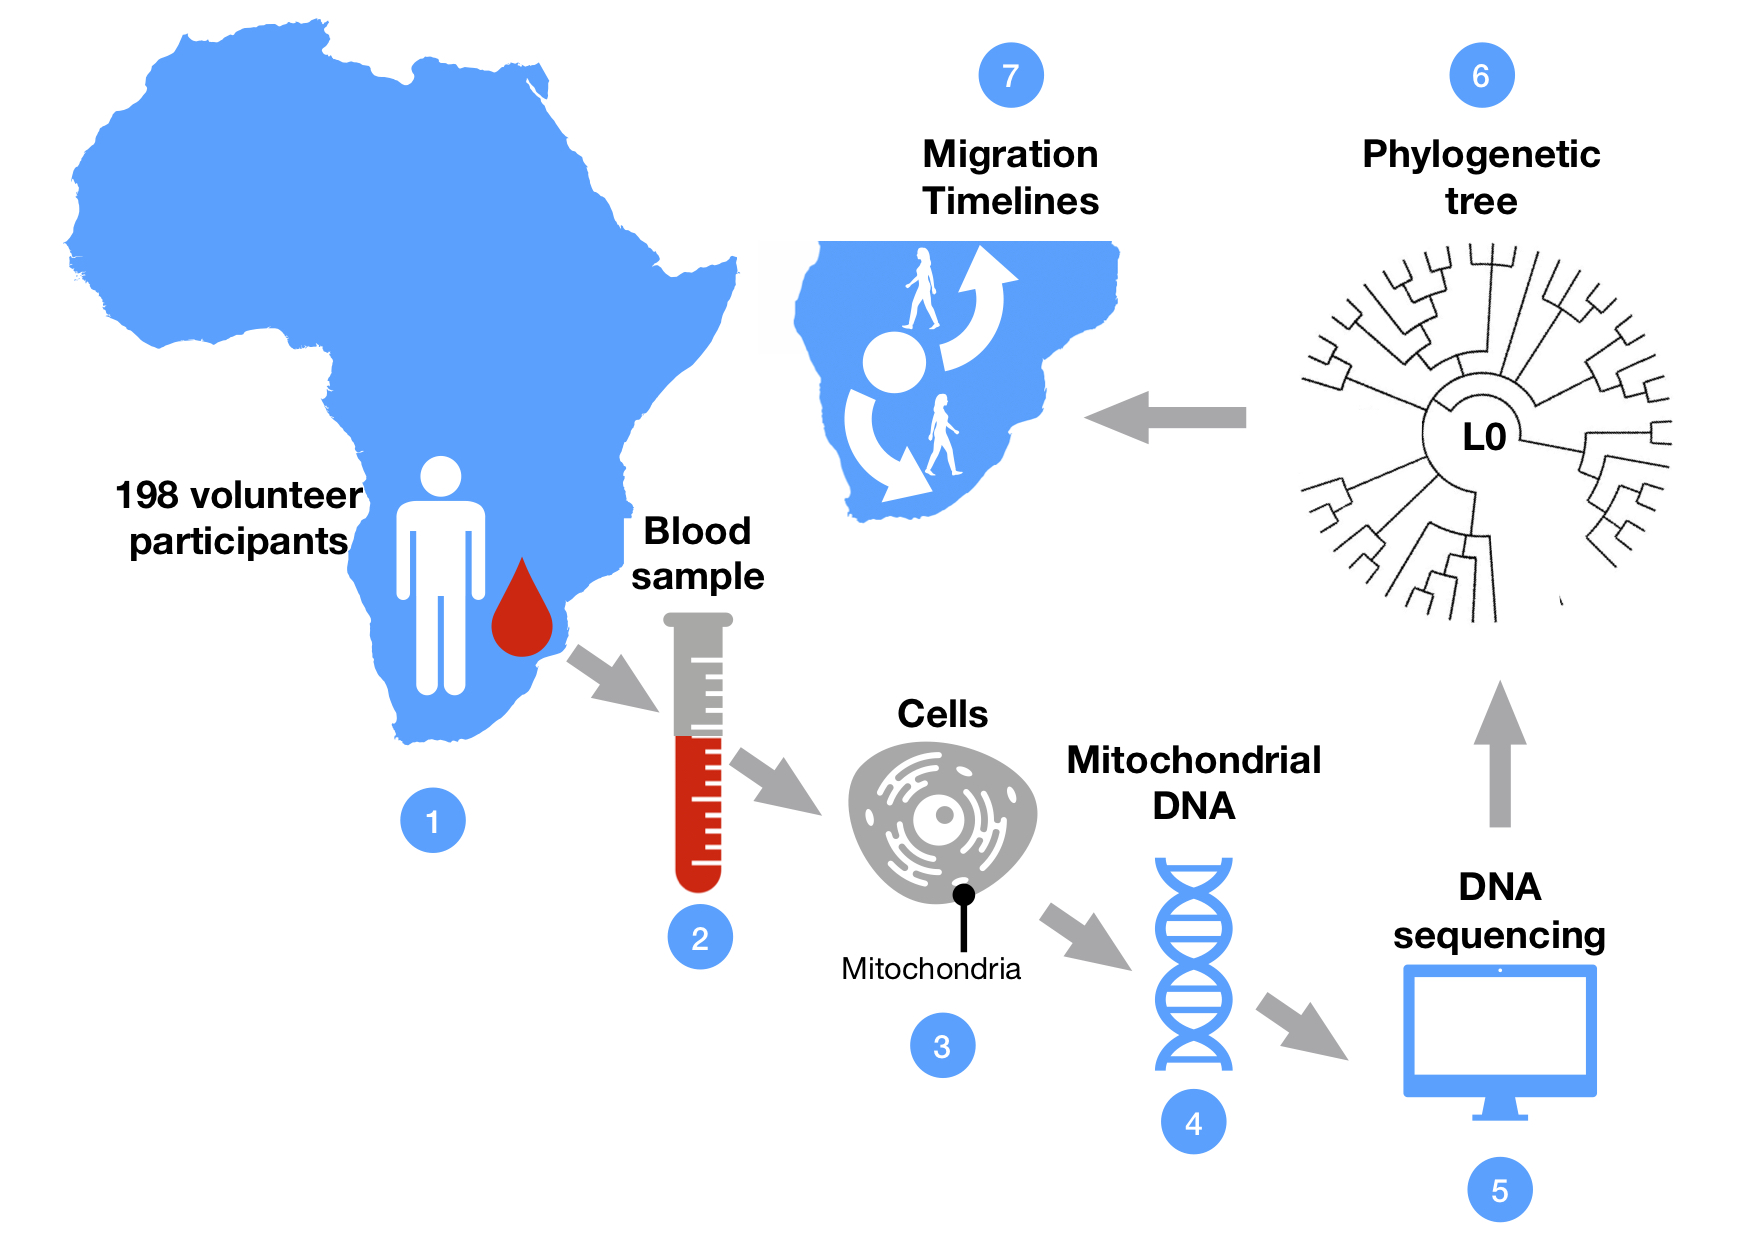 Figure 1: Reconstructing the phylogenetic tree of L0 sub-lineage from blood samples of volunteer study participants in Southern Africa. The L0 group represents the oldest branch of our common human genetic history. The genomic analysis is based on the DNA encapsulated in little structures (mitochondria) inside the cells. DNA sequencing from many individuals allows researchers to reconstruct the evolutionary tree of specific genetic lineages – in this case of the L0 group. Estimating the time of genetic divergence from the phylogenetic tree allowed researchers to reconstruct the timeline of past migration events.